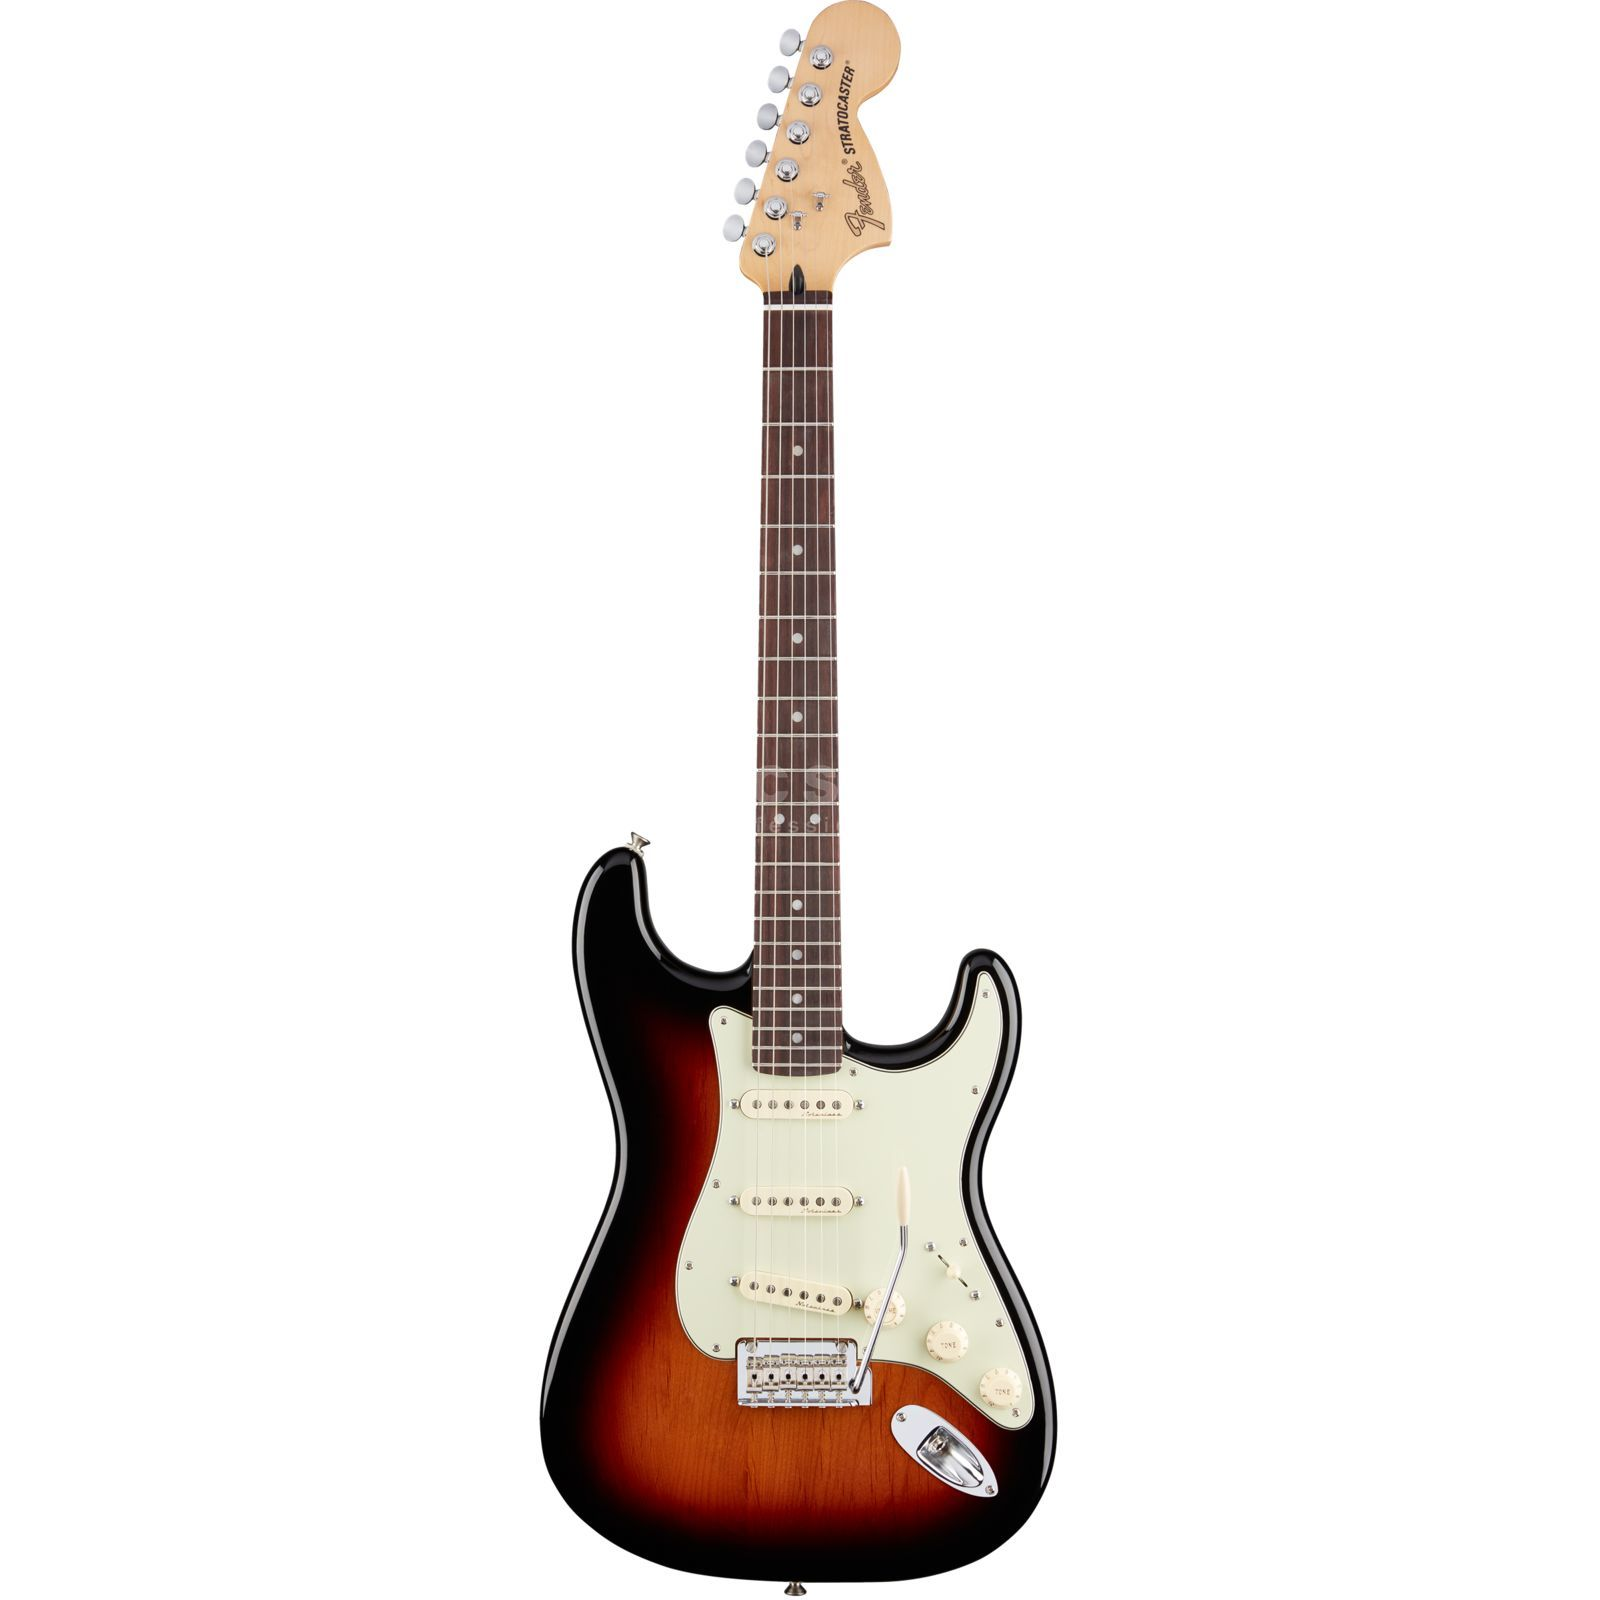 Fender Deluxe Roadhouse Stratocaster RW 3TS 3-Tone Sunburst Productafbeelding